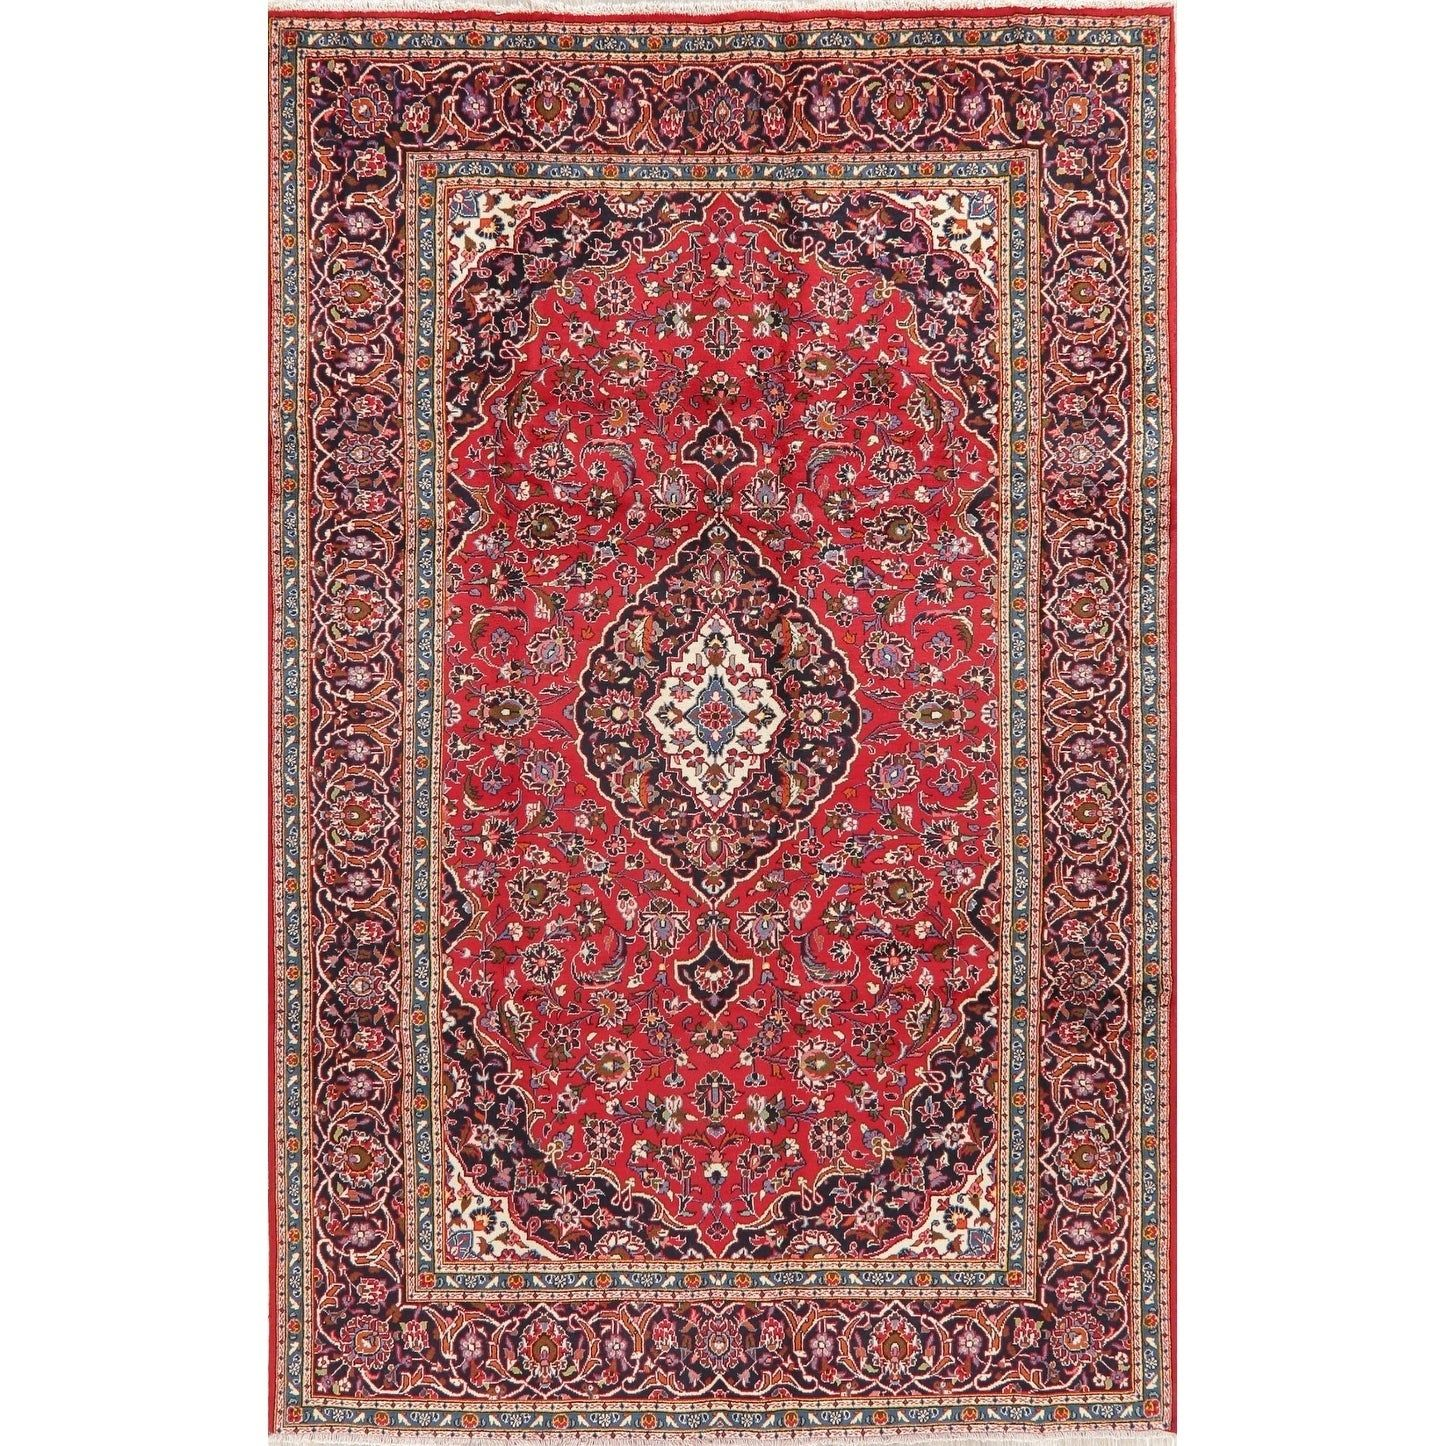 Refurbished Floral Kashan Persian Area Rug Handmade Oriental Red Carpet 6 7 X 10 4 6 7 X 10 4 Red Wool Floral Botanical Rugs Area Rugs Handmade Rugs